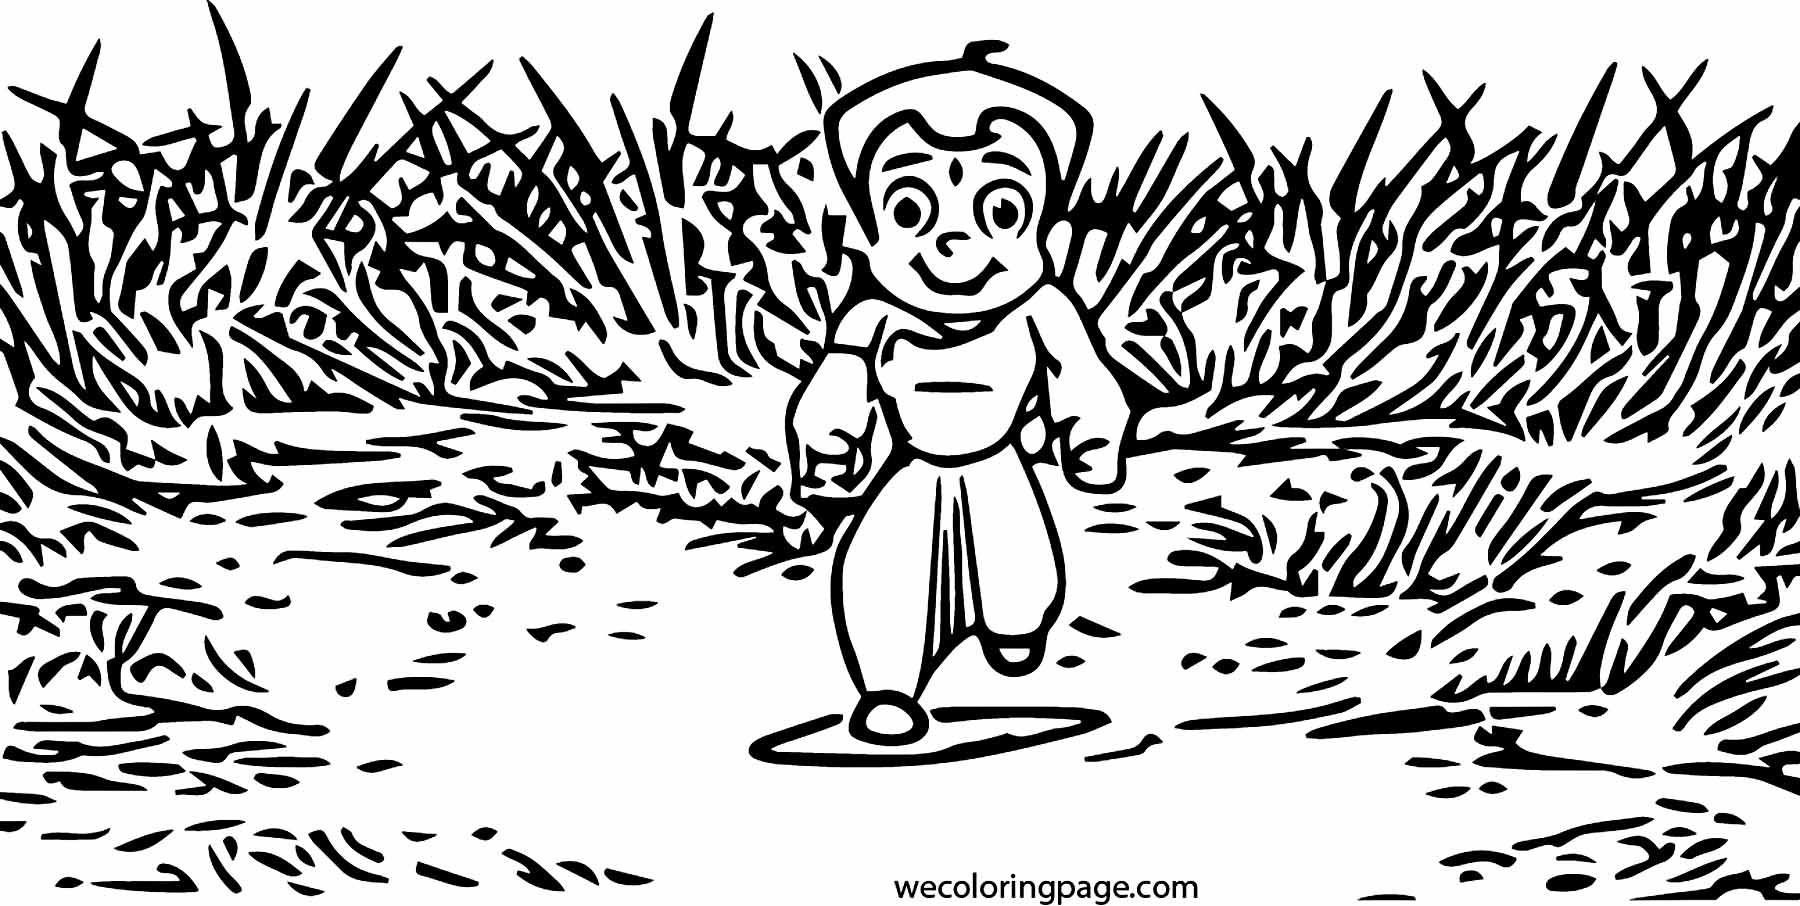 Chhota Bheem Carnival Coloring Page 46